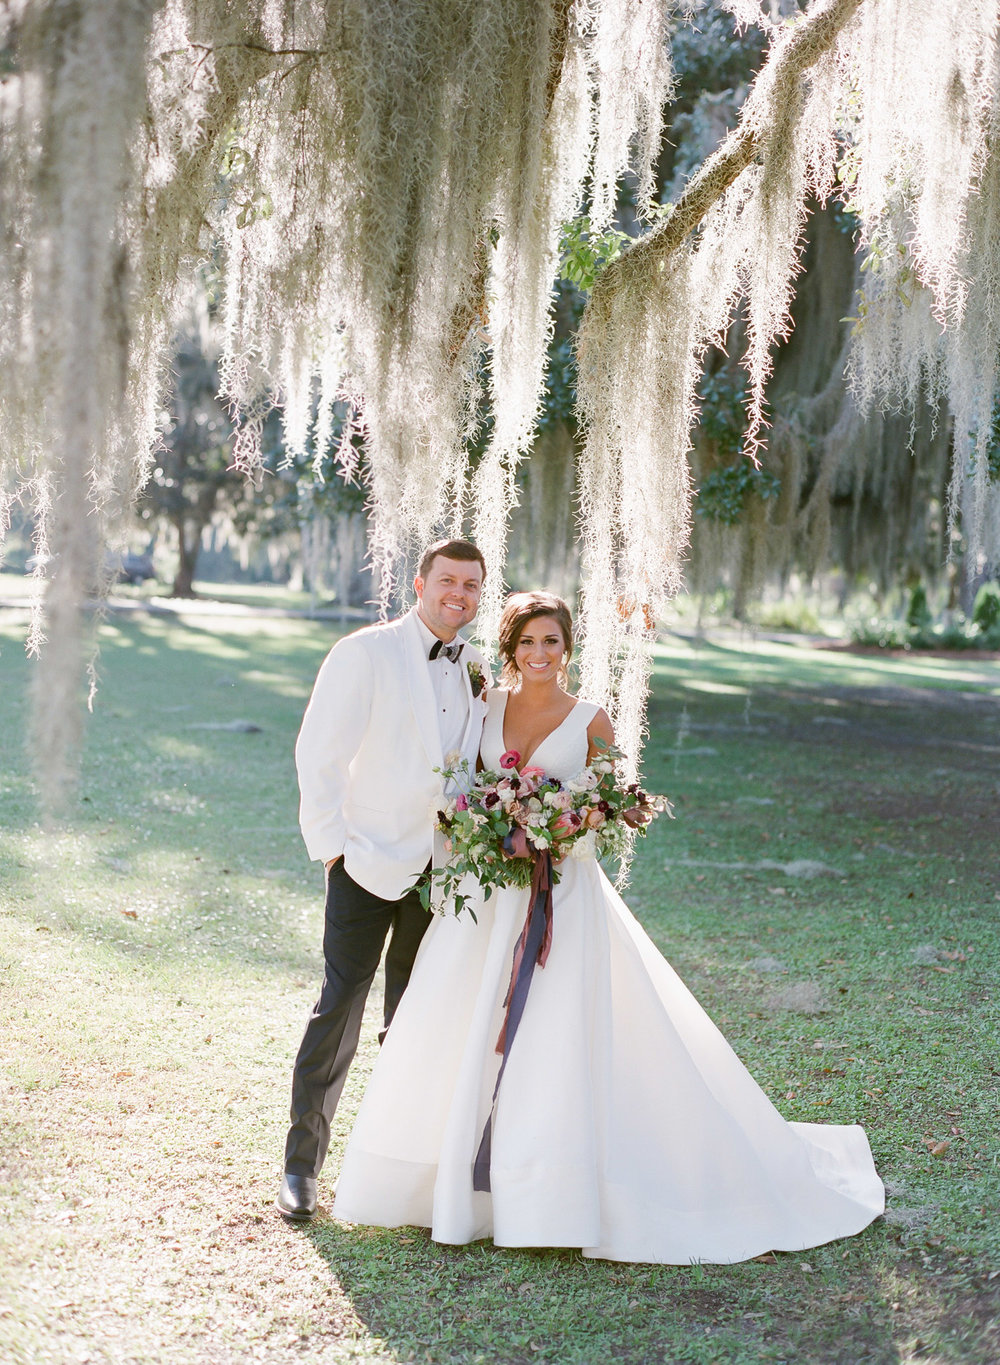 Charleston-Wedding-Photographer-45.jpg